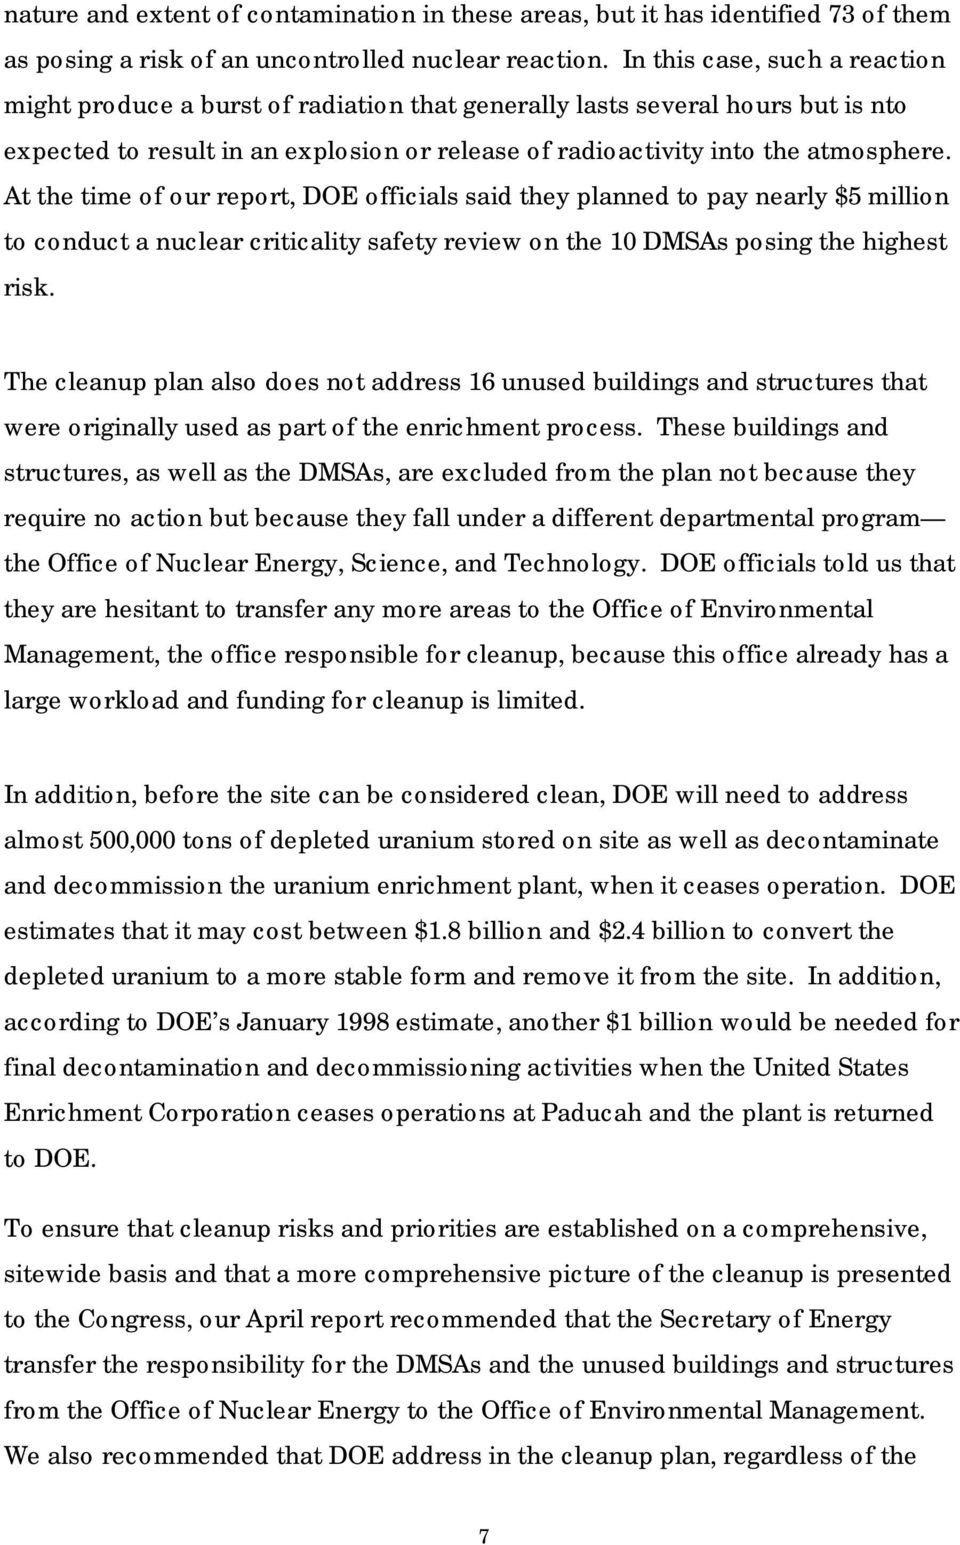 At the time of our report, DOE officials said they planned to pay nearly $5 million to conduct a nuclear criticality safety review on the 10 DMSAs posing the highest risk.